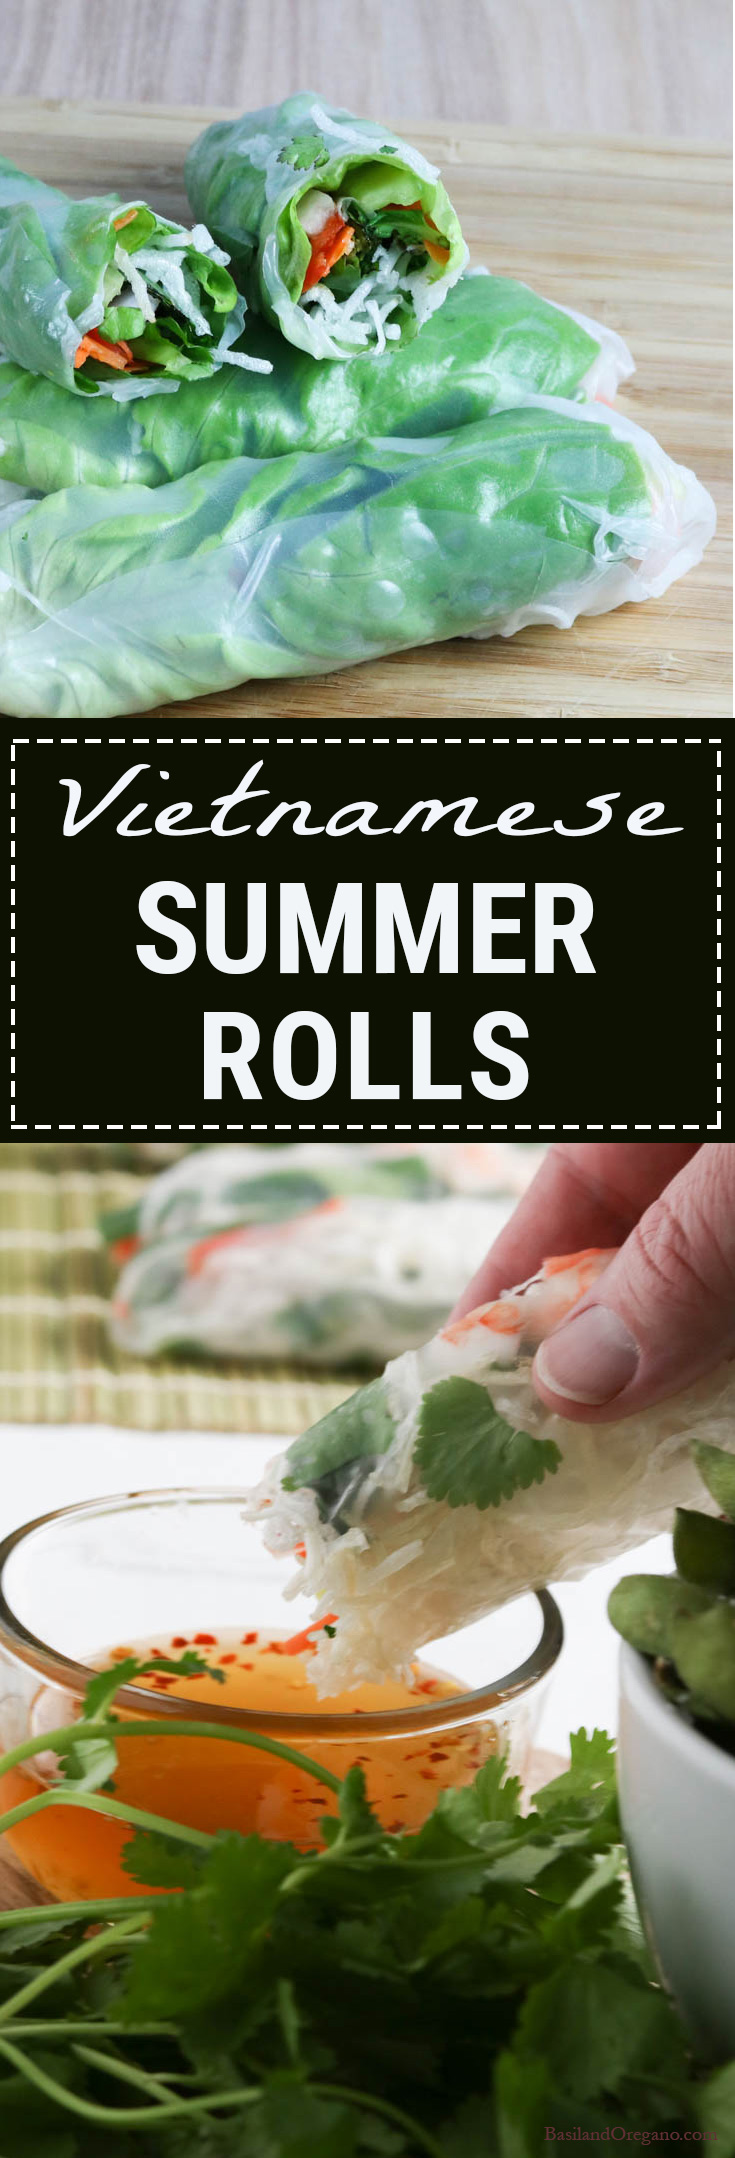 So what is a summer roll, really? Picture this: Same wrapper as a spring roll, but not deep fried in oil, go ahead and stuff it with fresh ingredients such as matchstick veggies, bean threads, poached shrimp (if you want), chilies and fragrant herbs. You can add other ingredients too, whatever your little heart desires. Summer rolls rock!